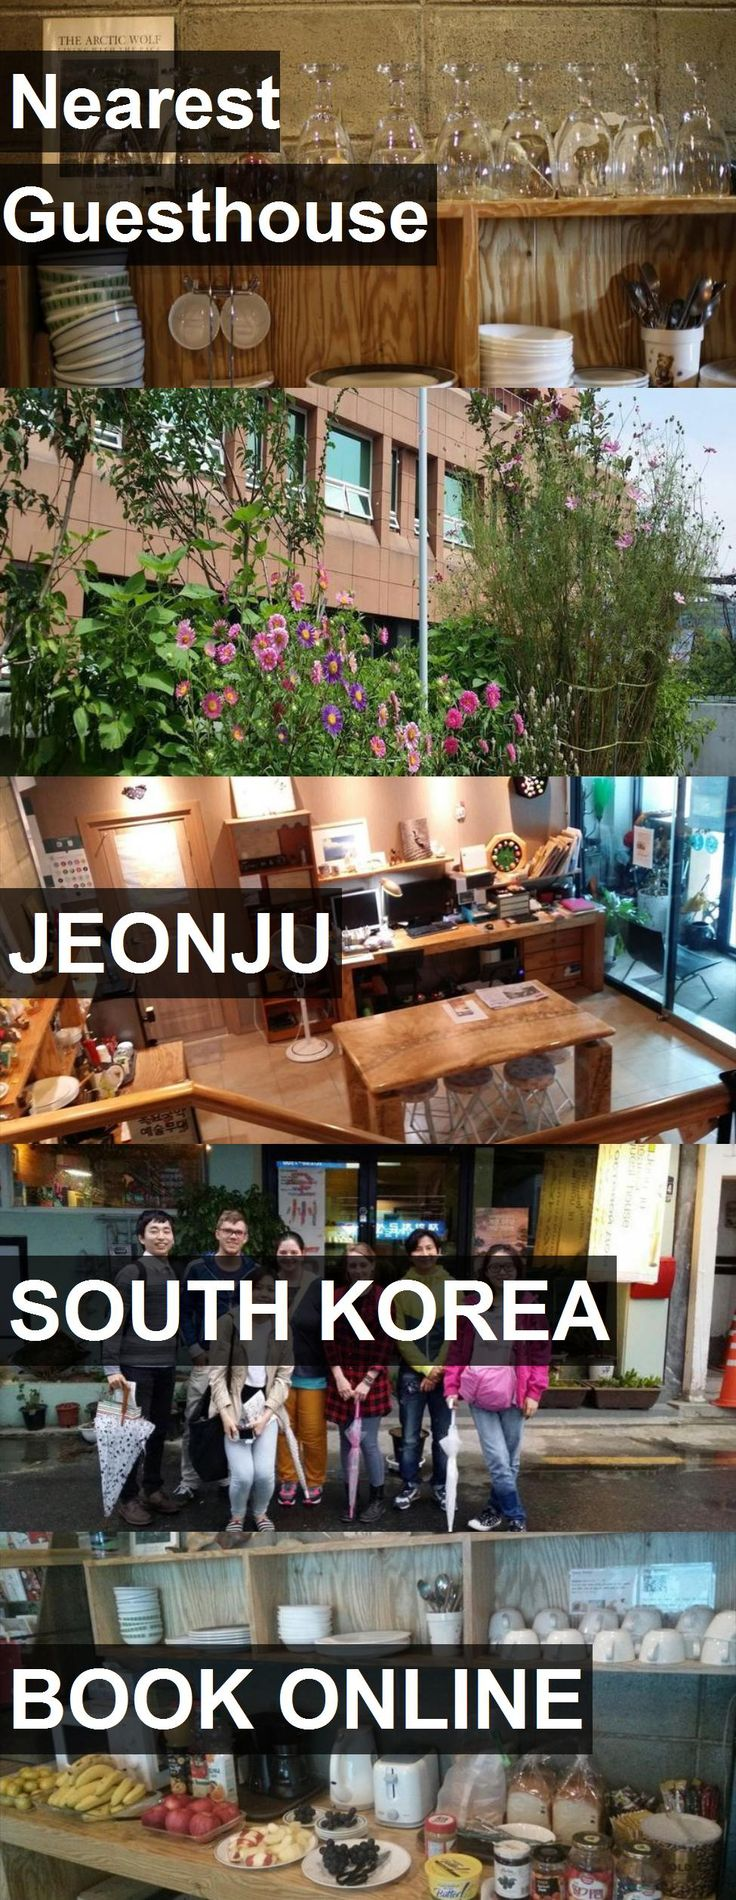 Hotel Nearest Guesthouse in Jeonju, South Korea. For more information, photos, reviews and best prices please follow the link. #SouthKorea #Jeonju #travel #vacation #hotel